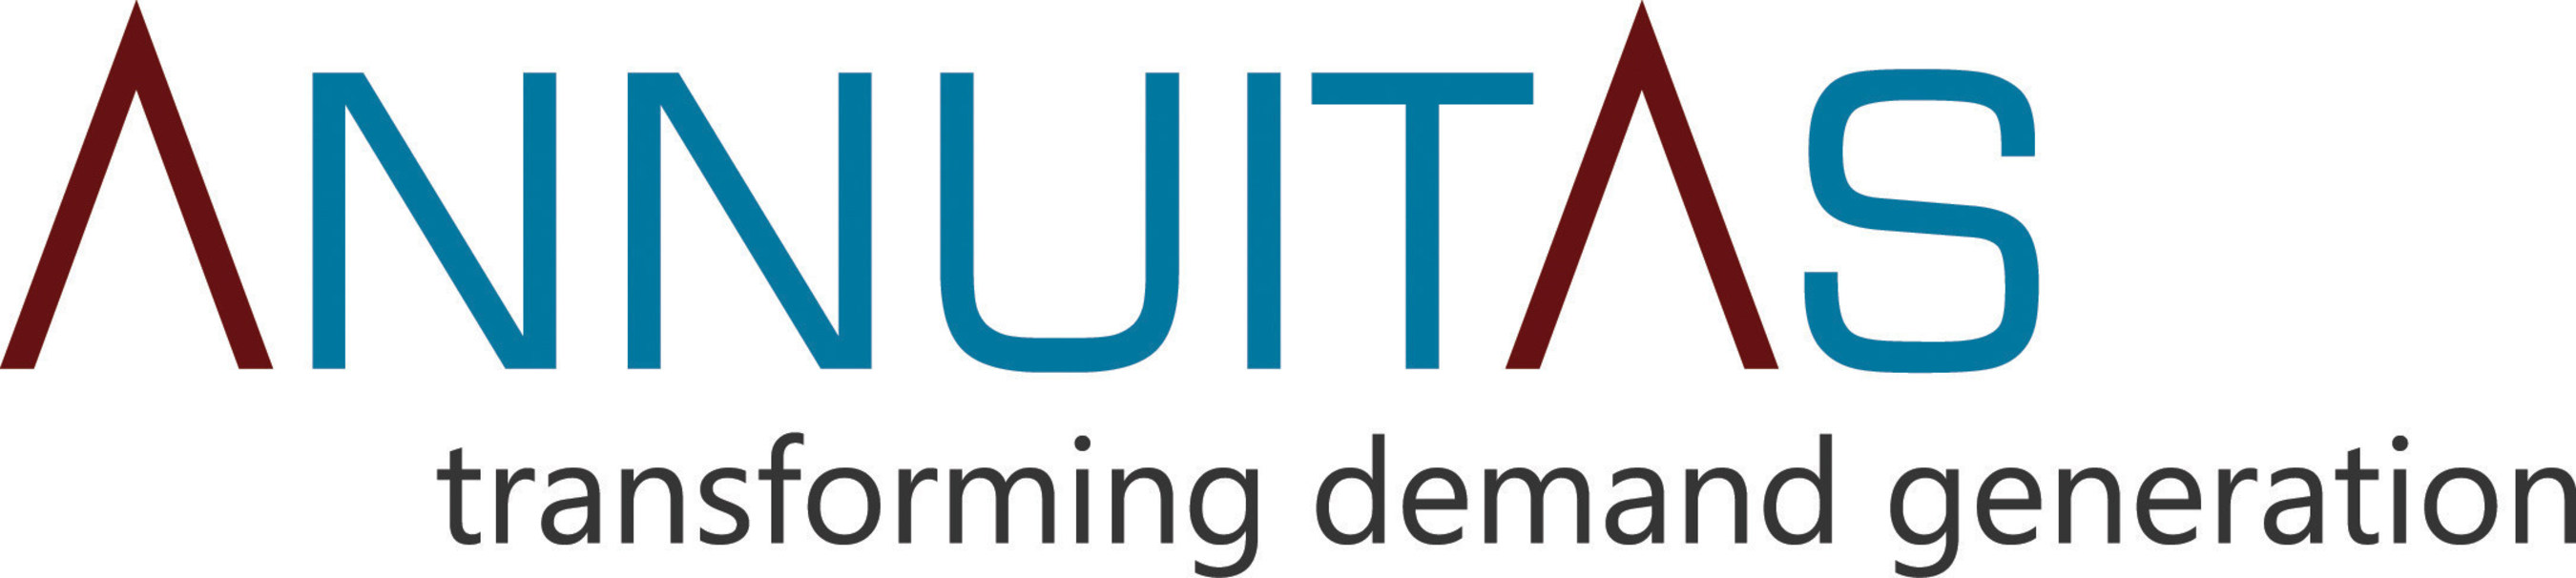 ANNUITAS is a B2B Demand Generation Strategy firm designed to help enterprise organizations Transform Demand ...